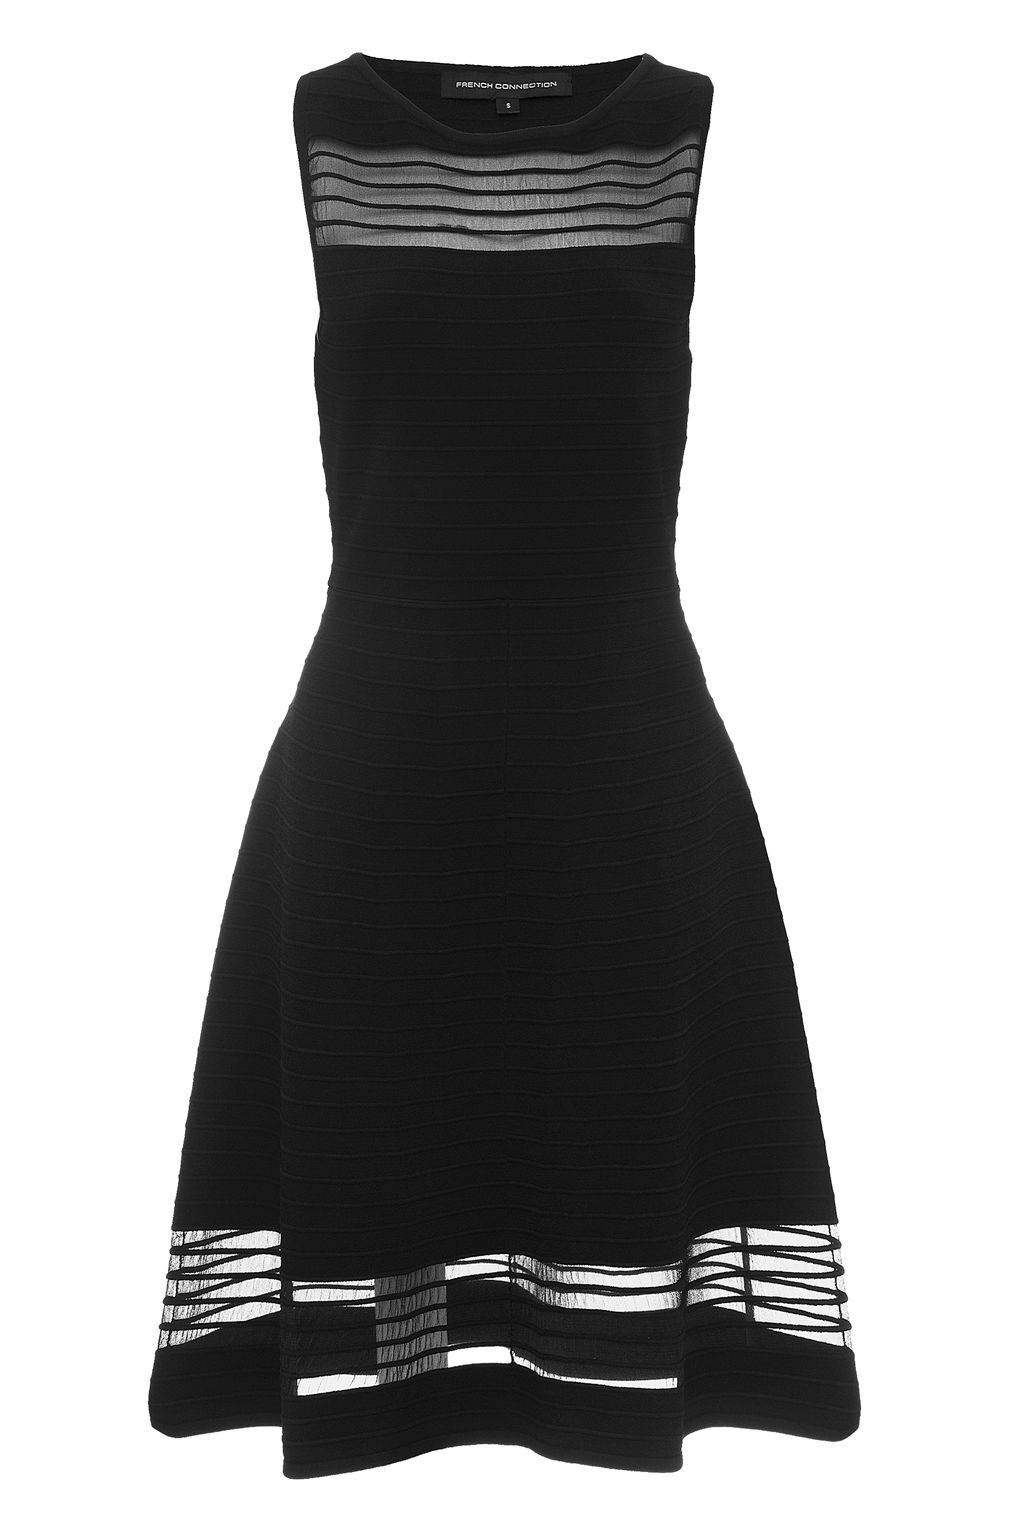 French Connection Tobey Crepe Knits Flared Dress, Black